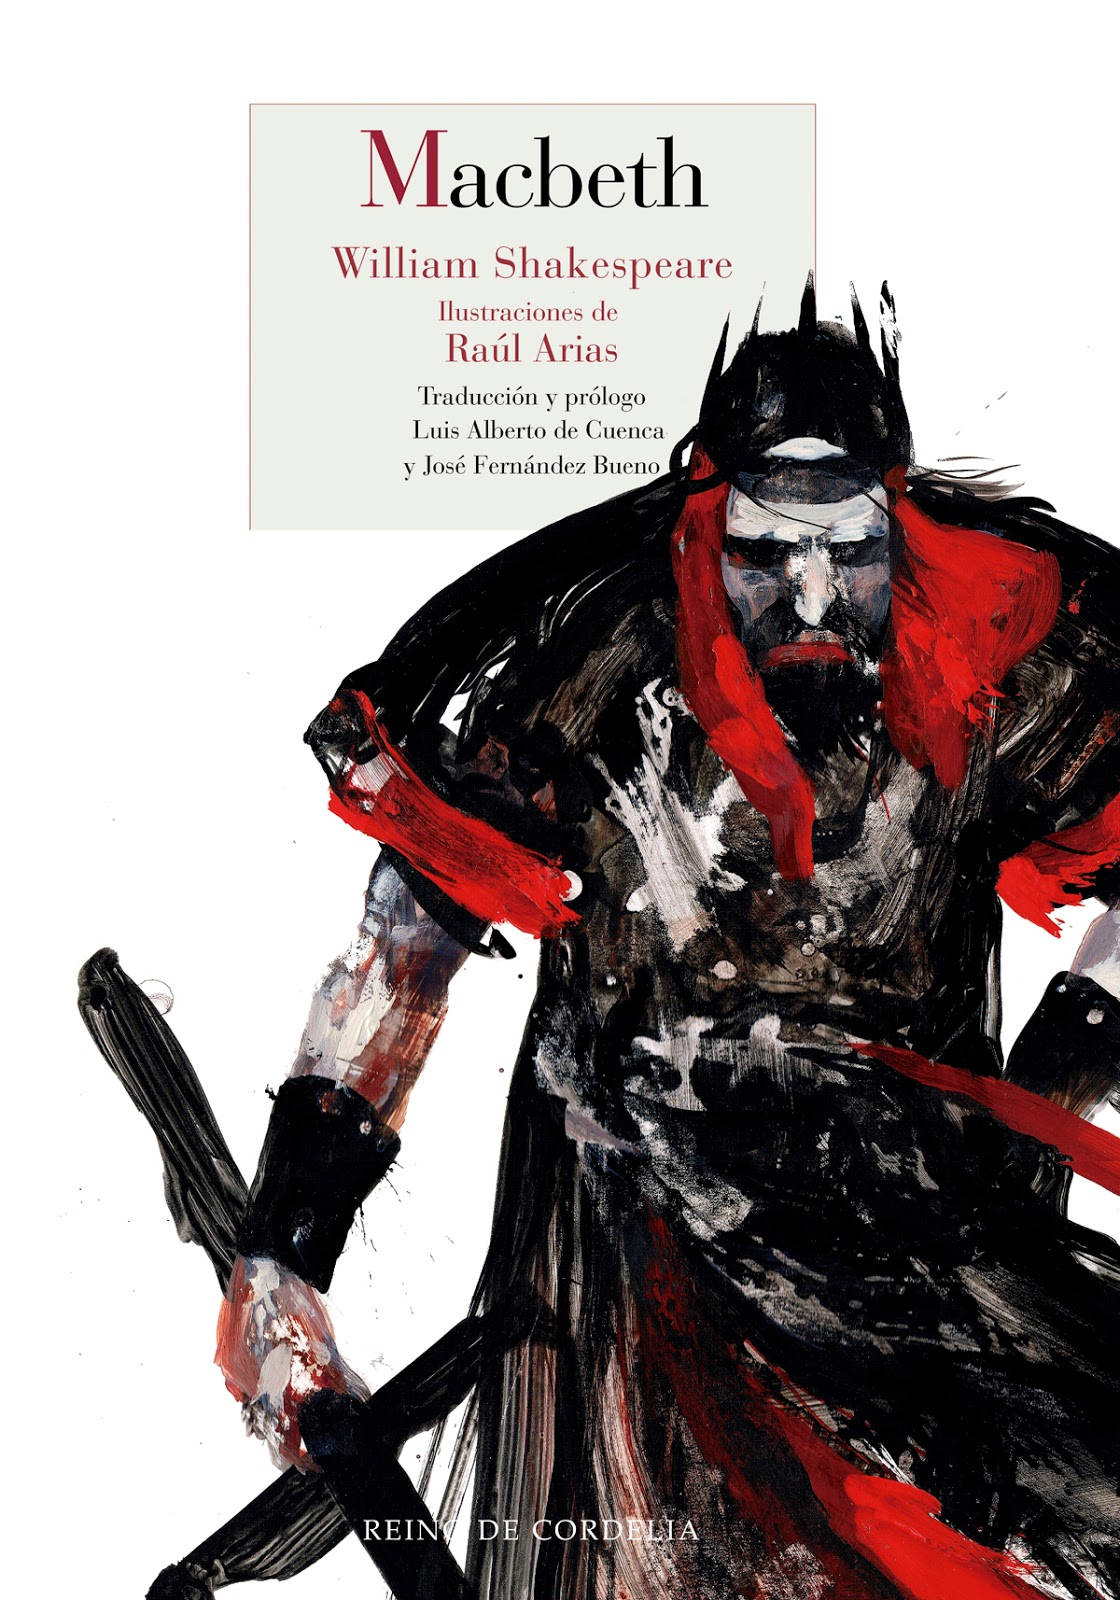 lady macbeth character analysis william shakespeare The macbeth characters covered include: macbeth, lady macbeth  macbeth william shakespeare contents read an in-depth analysis of lady macbeth.